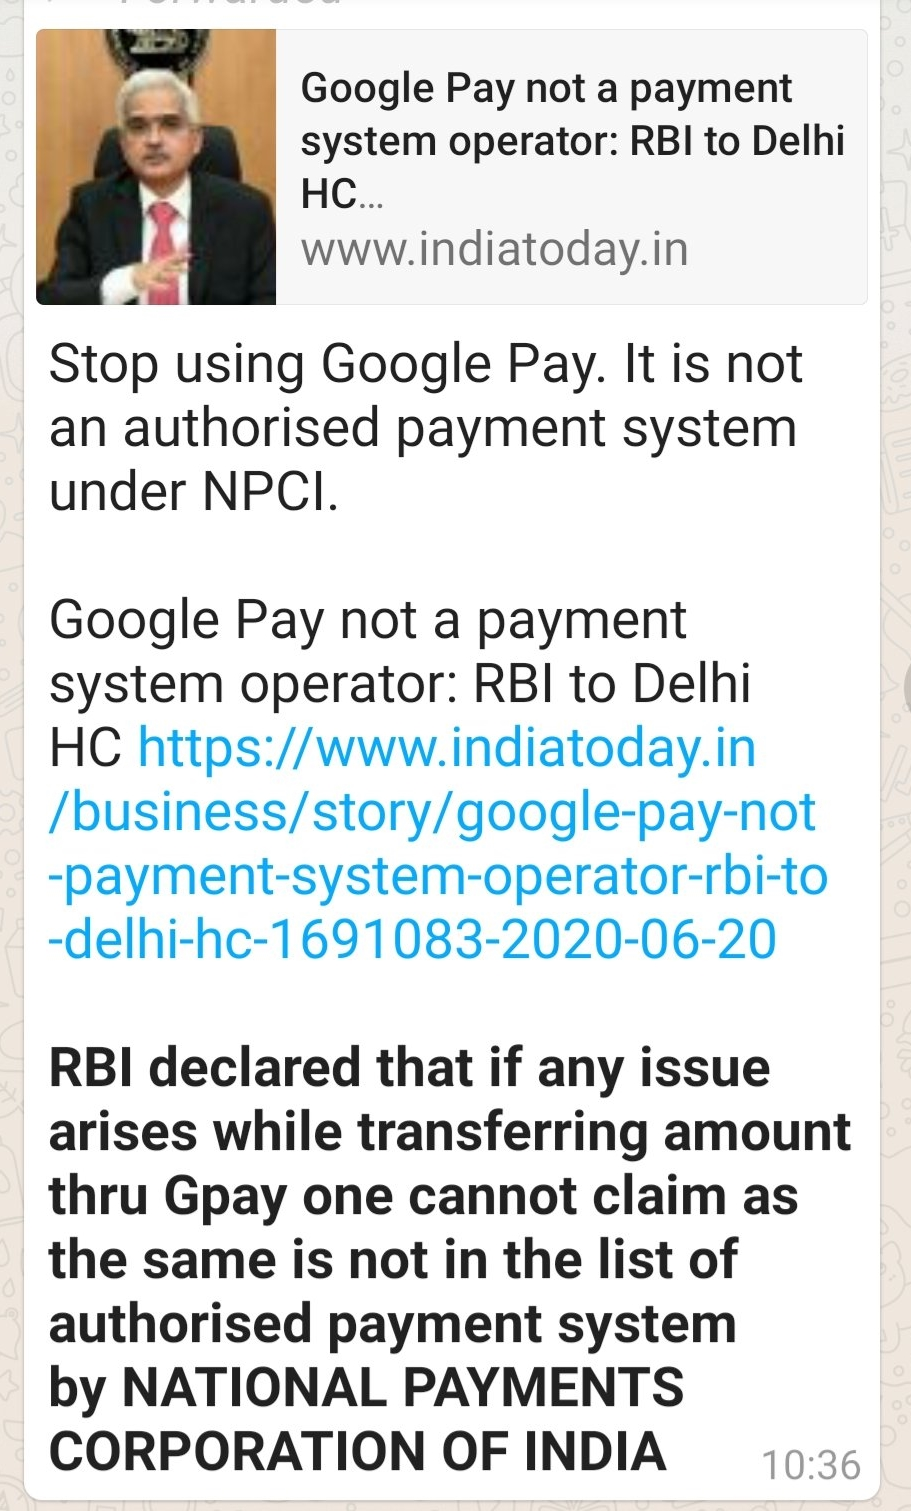 Image about RBI Banned Google Pay, Unsafe to Use